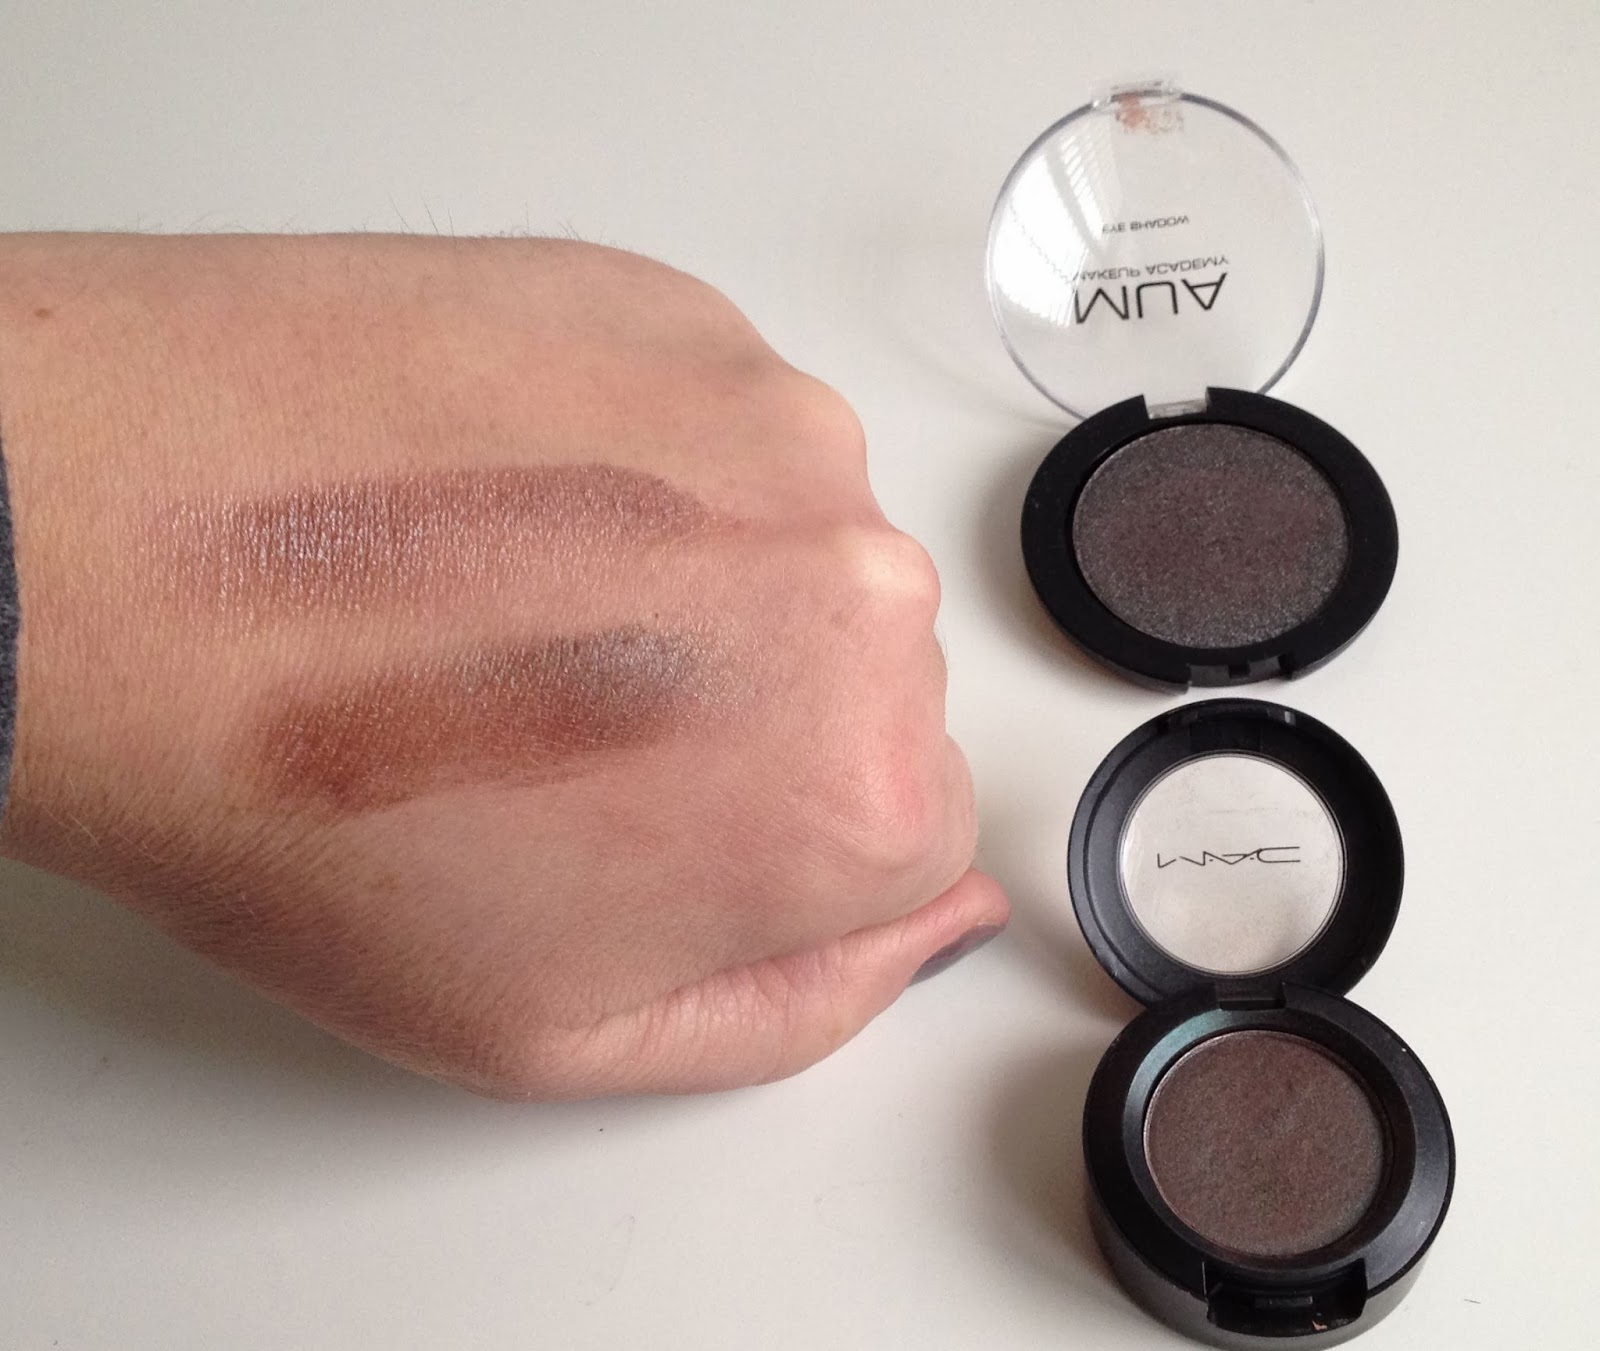 MUA Eyeshadow shade 12 a dupe for MAC Club swatches with duo chrome effect